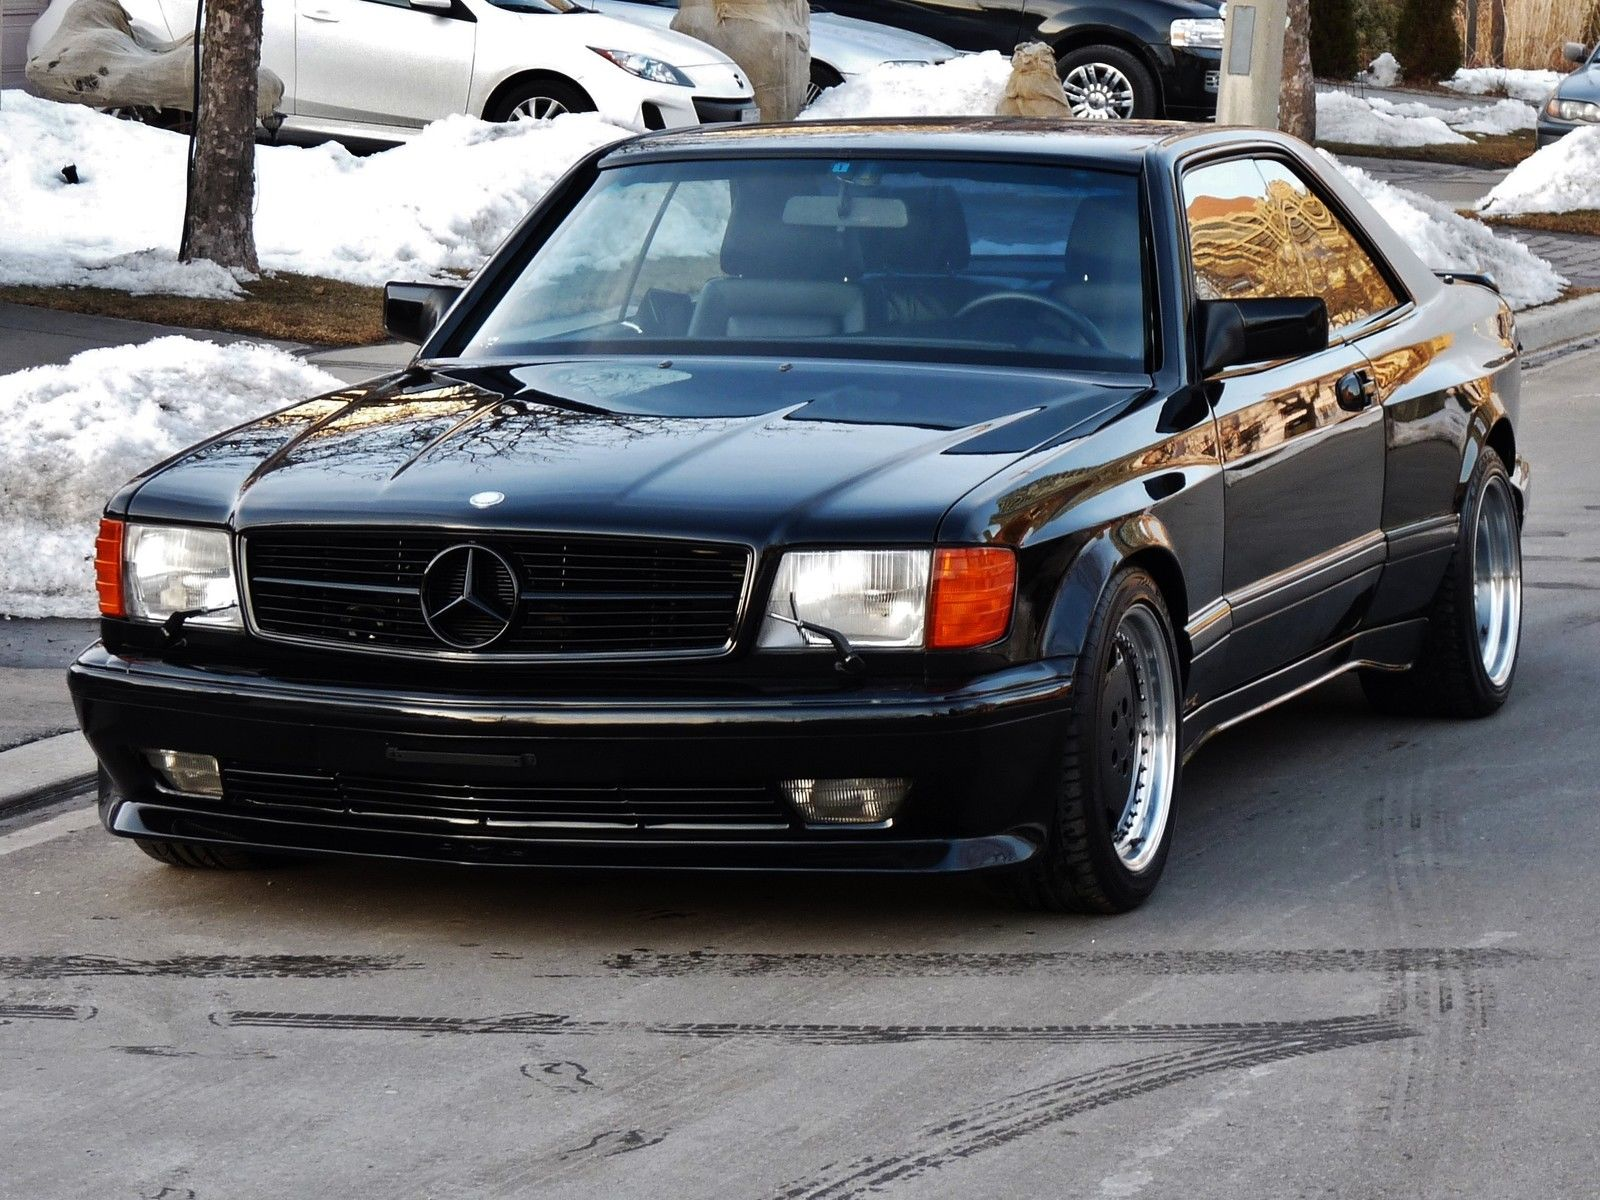 1990 Mercedes-Benz 560SEC AMG 6.0 Widebody Is Badass, But ...